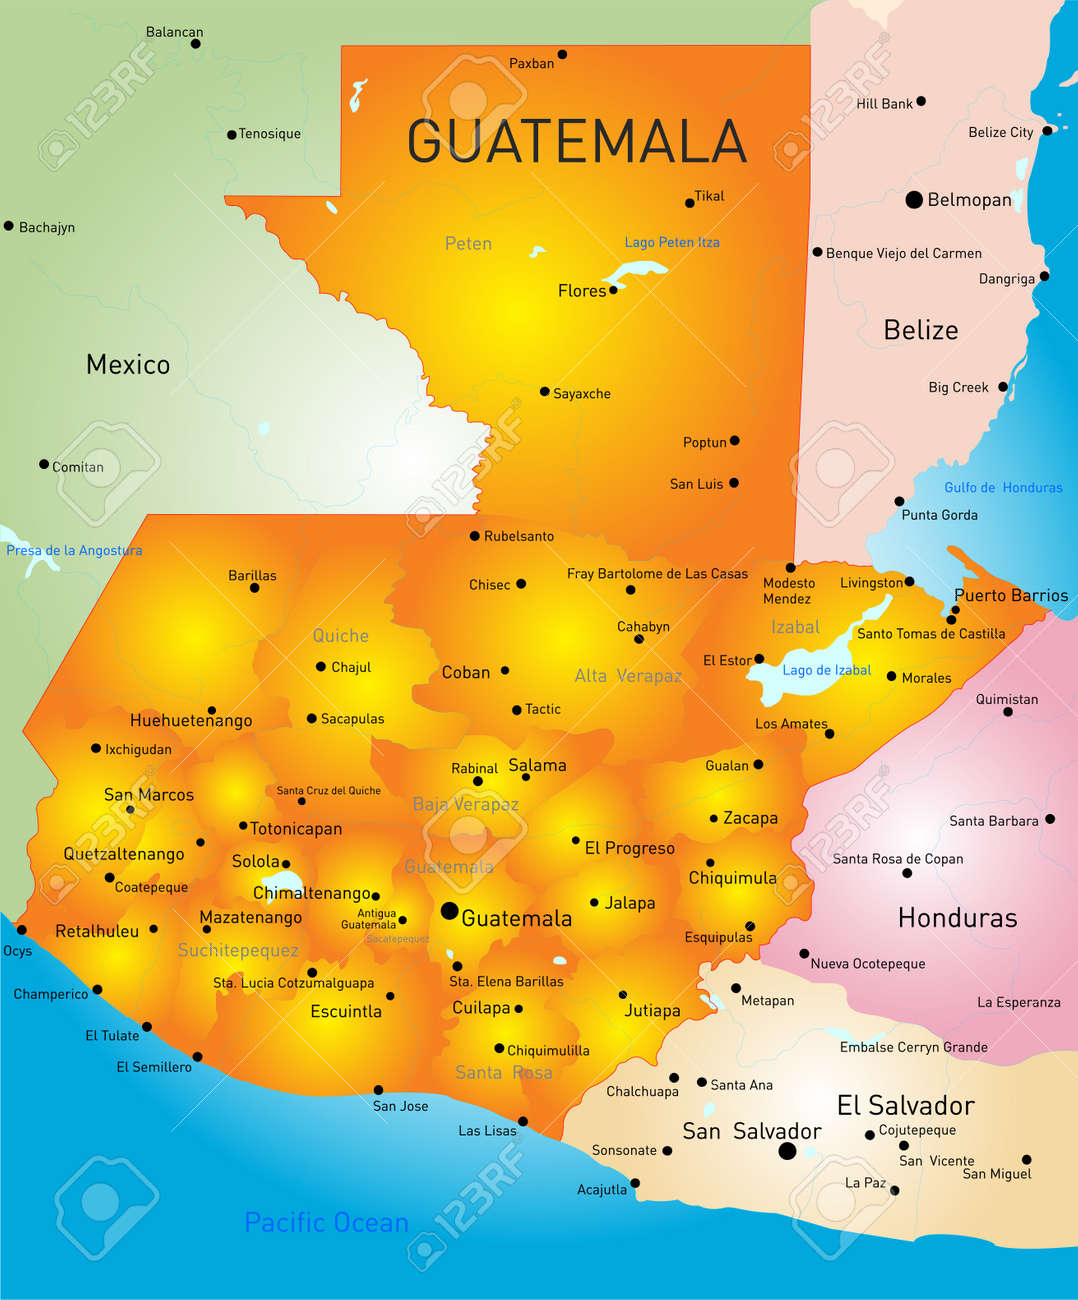 Departments Map Of Guatemala Bikini Atoll Map Hong Kong China Map - Departments map of guatemala